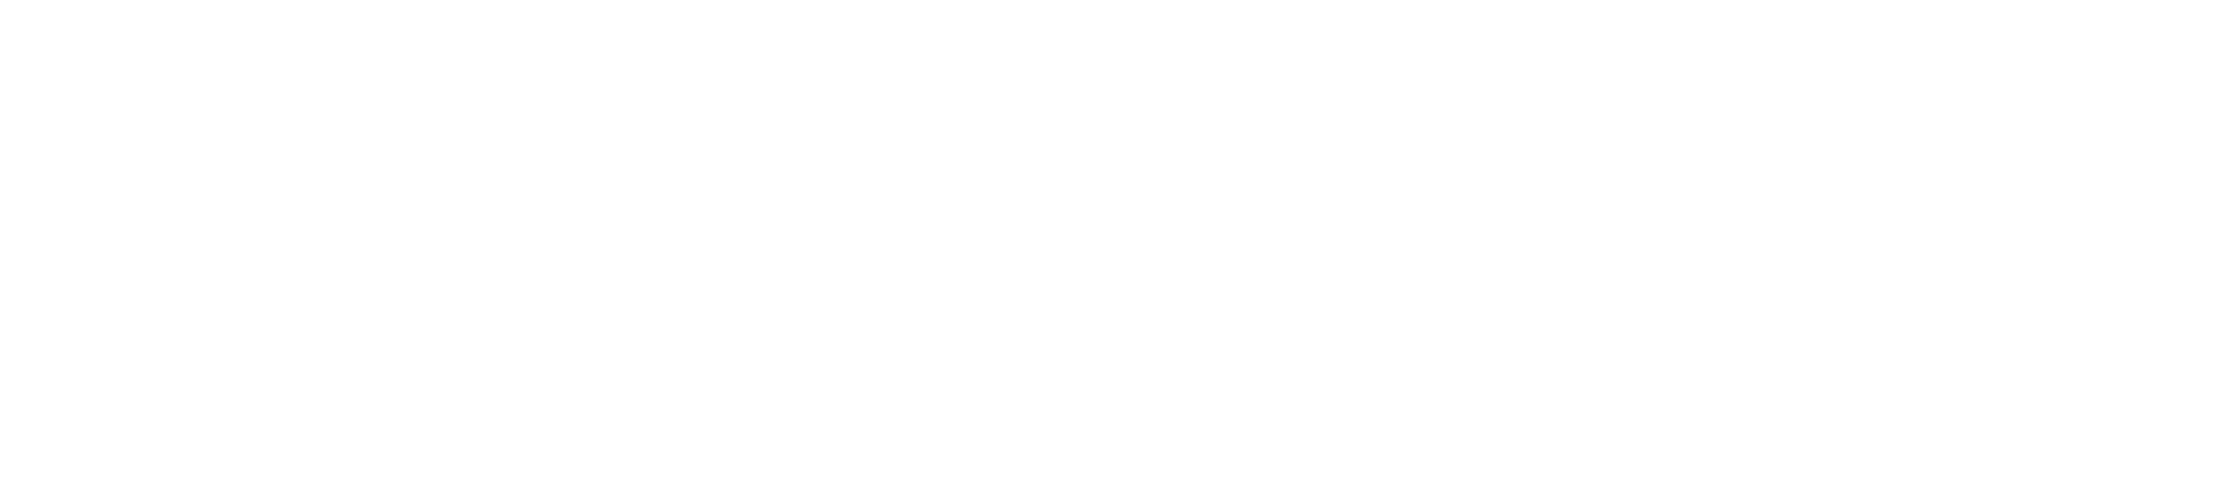 The Irving West Hotel logo